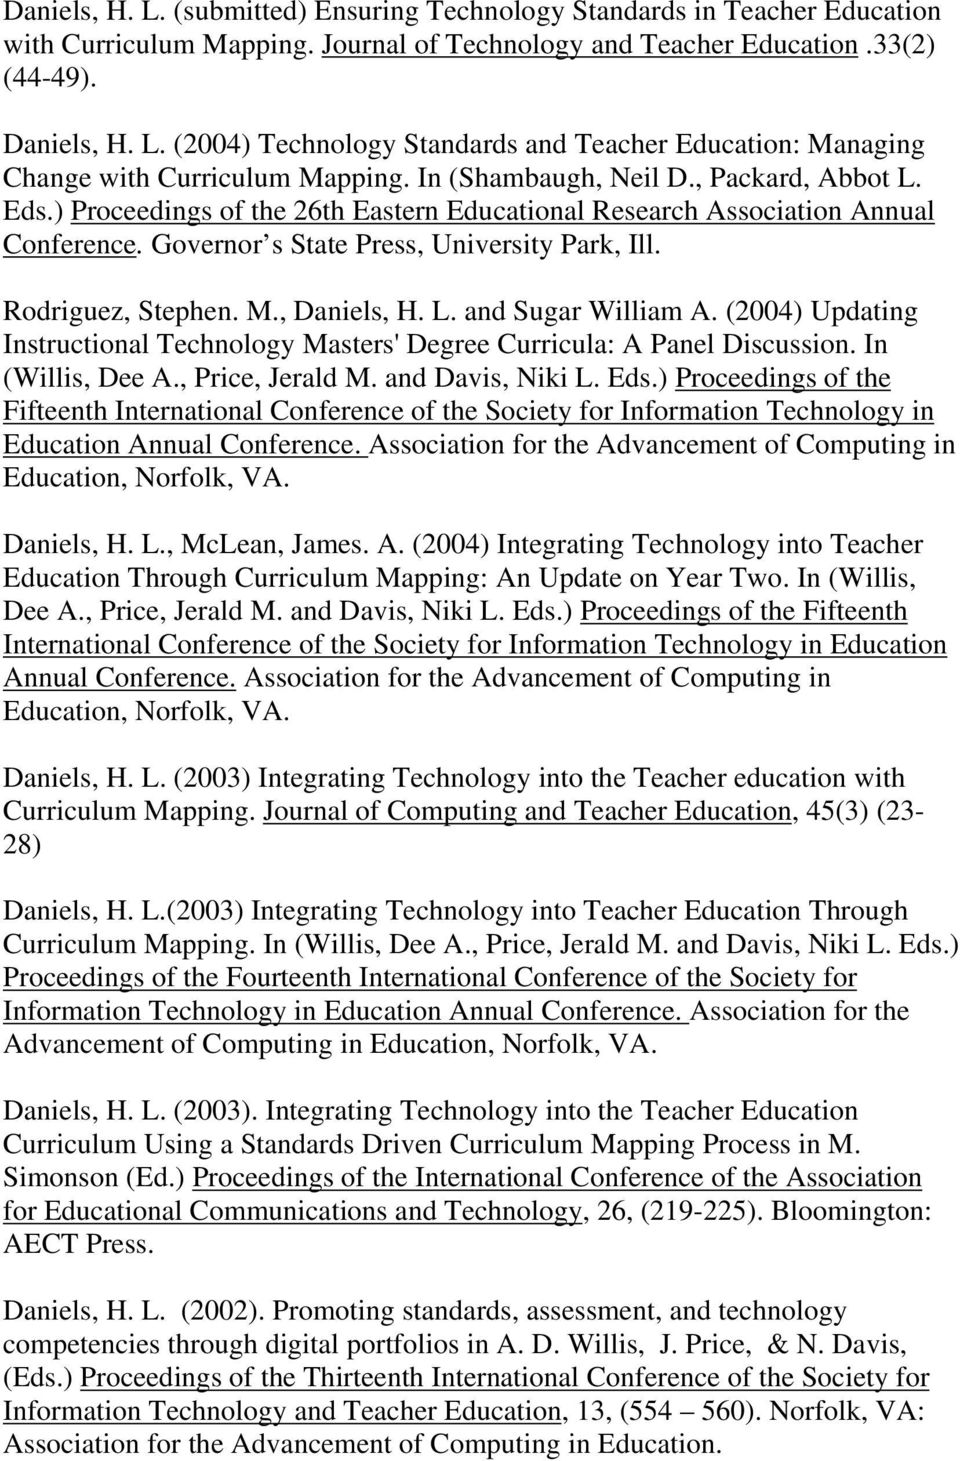 , Daniels, H. L. and Sugar William A. (2004) Updating Instructional Technology Masters' Degree Curricula: A Panel Discussion. In (Willis, Dee A., Price, Jerald M. and Davis, Niki L. Eds.